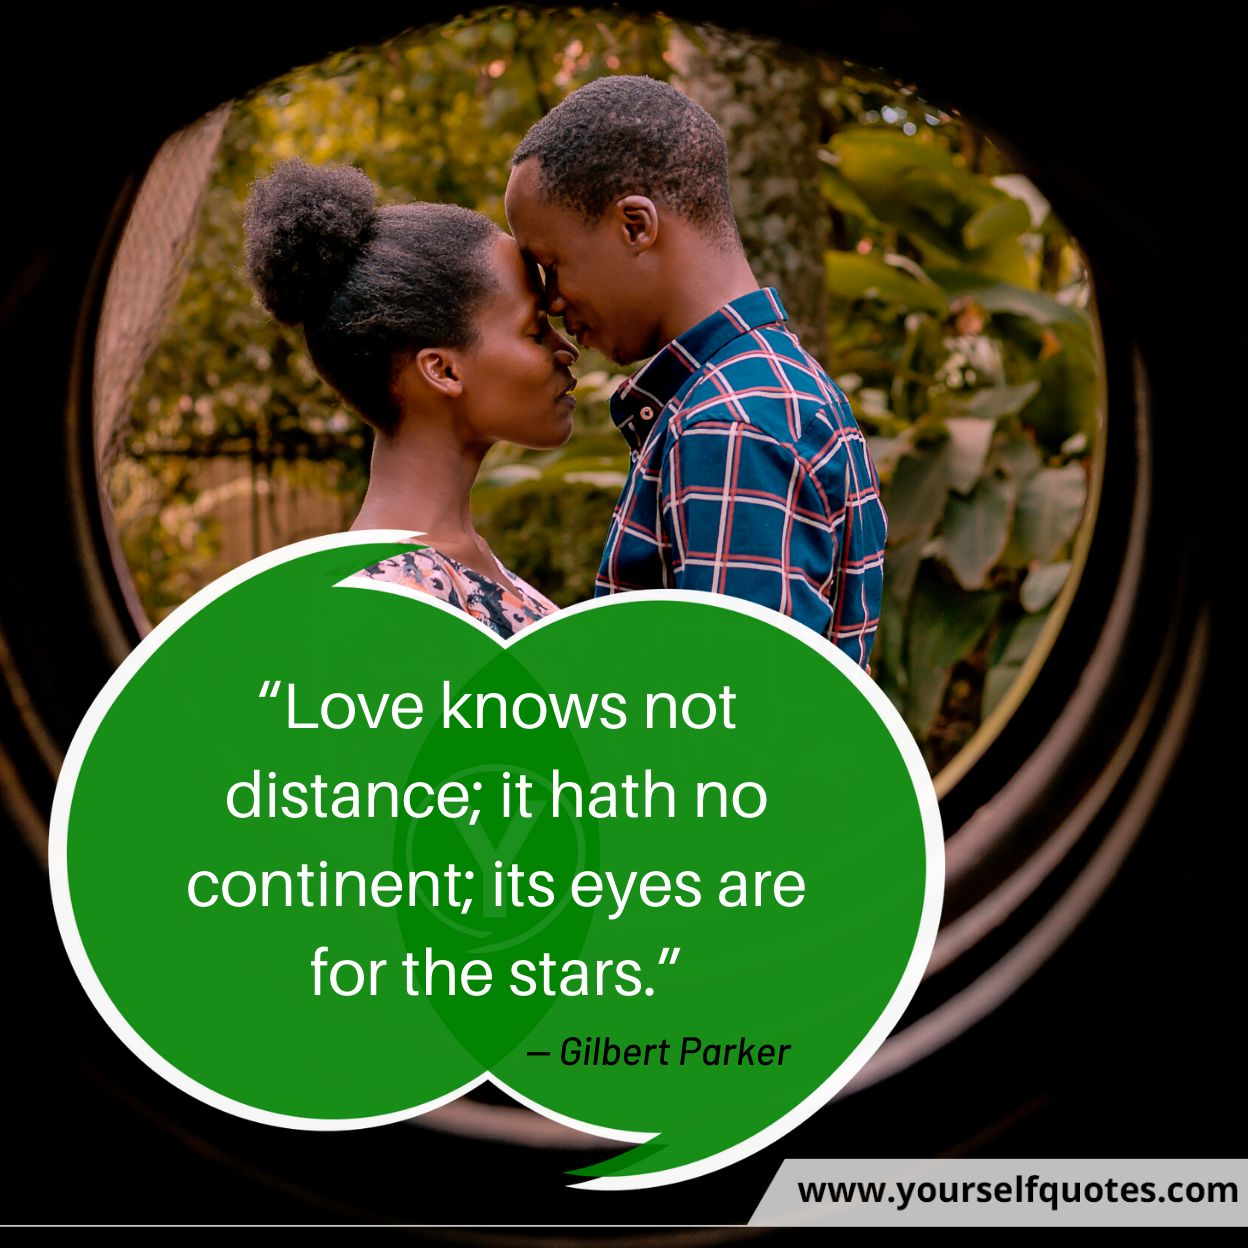 Inspiring Quotes on Love